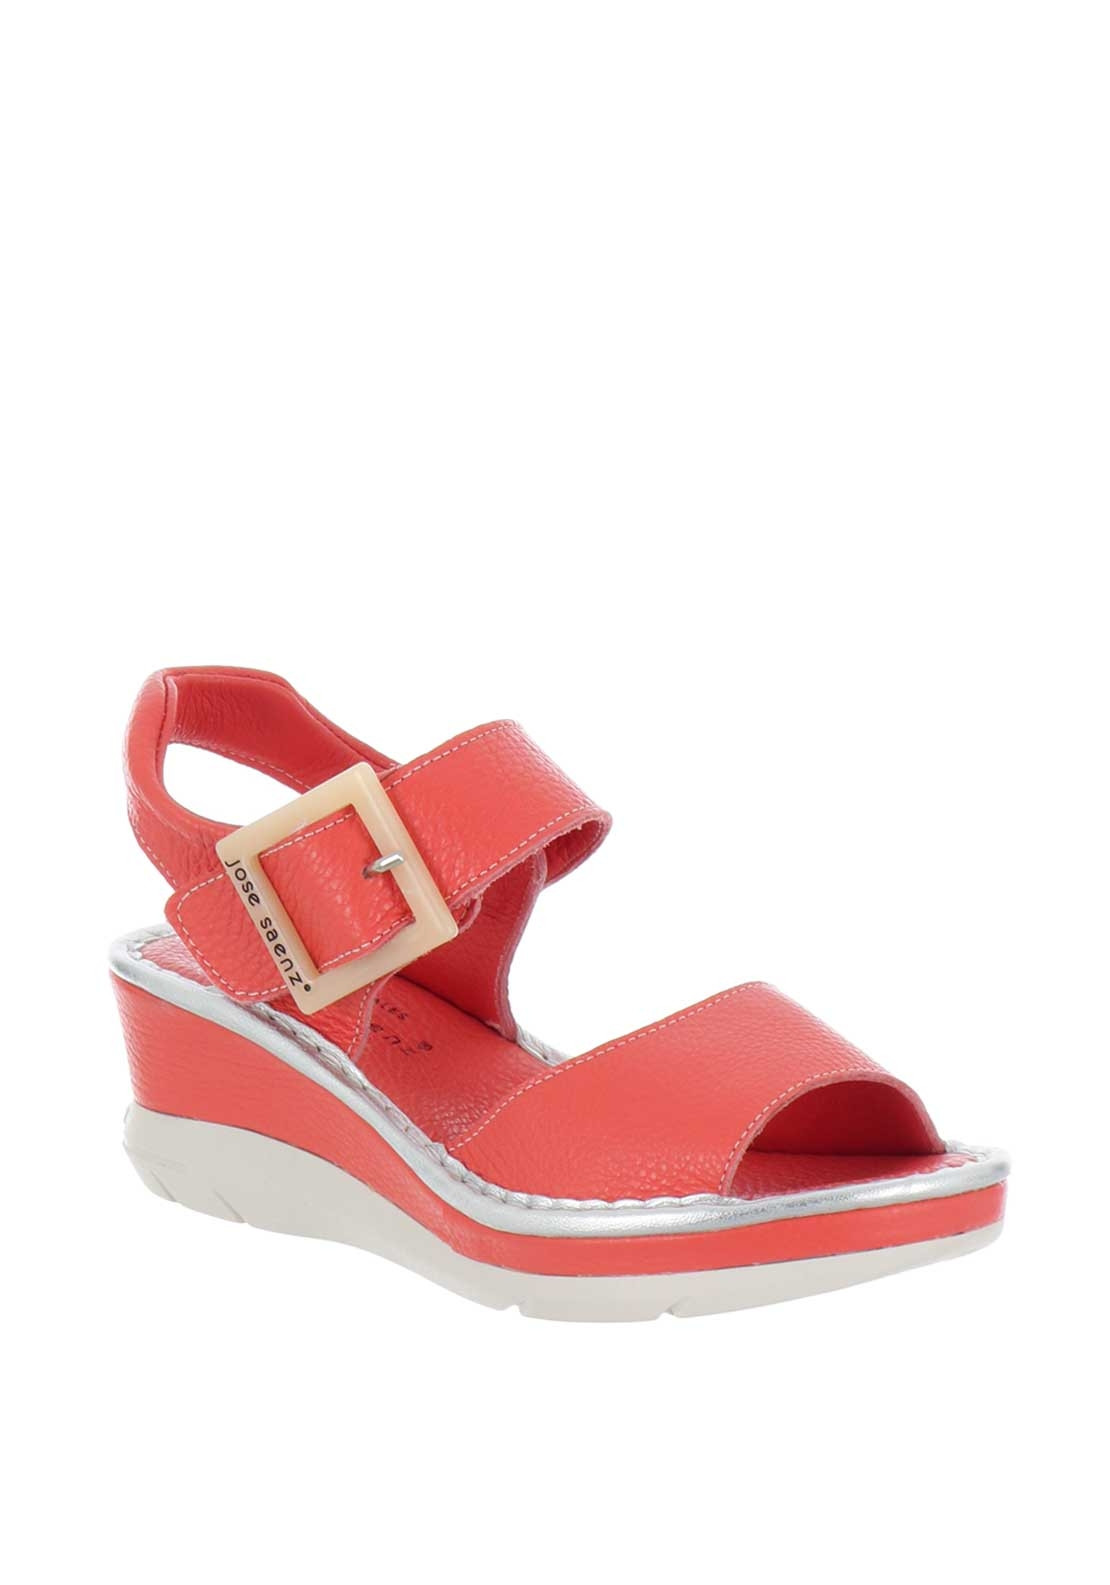 1d187ca08ade Jose Saenz Leather Buckle Wedge Sandals